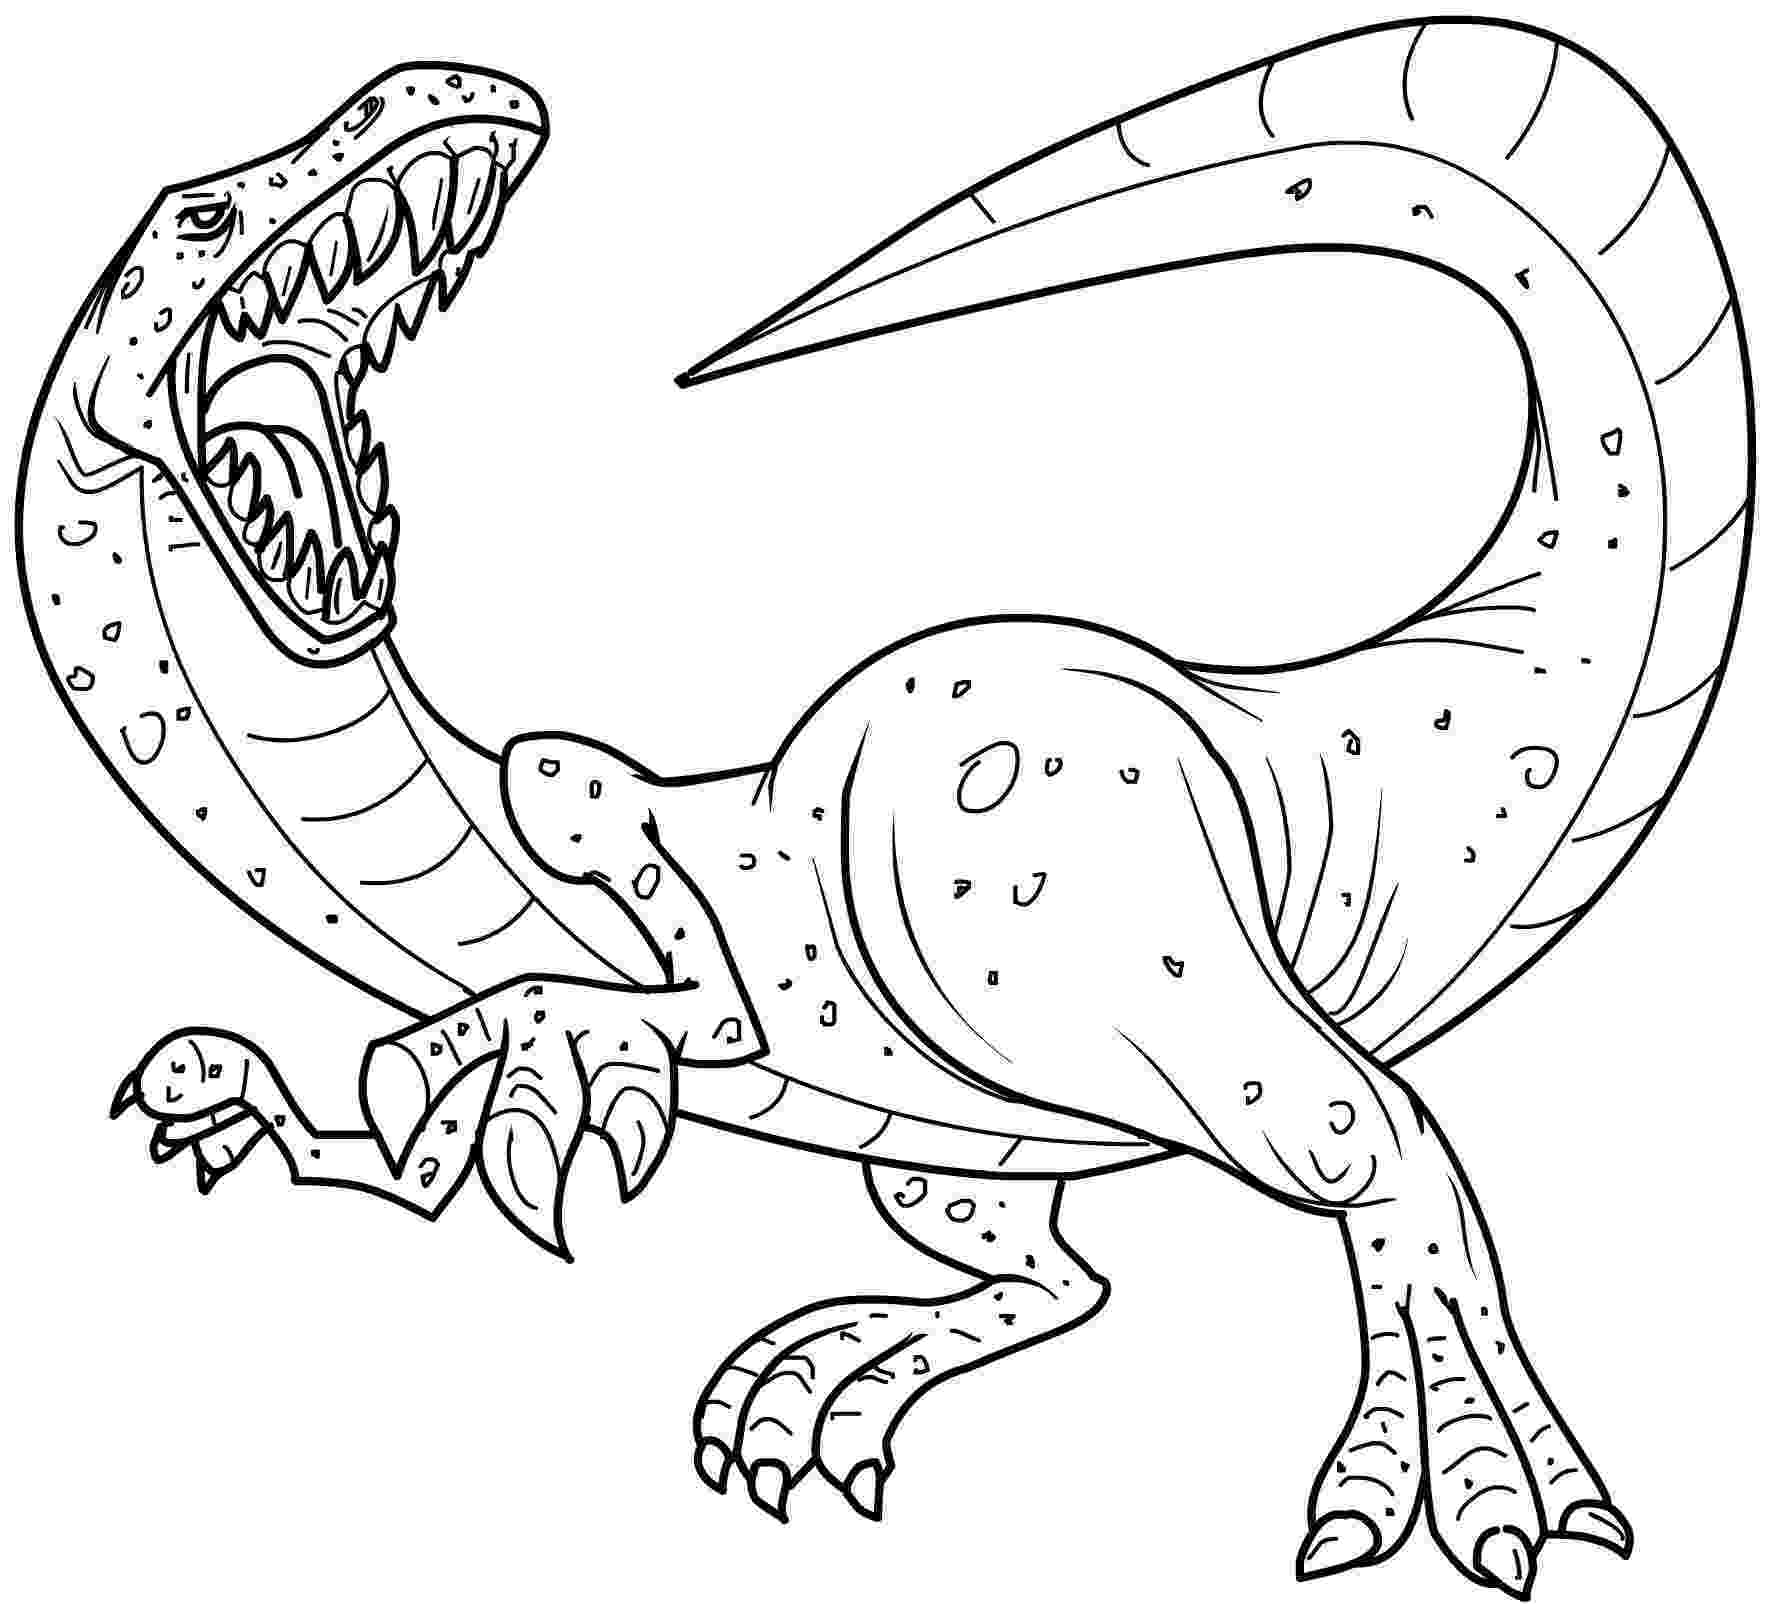 dino colouring pages online free printable dinosaur coloring pages for kids online pages colouring dino